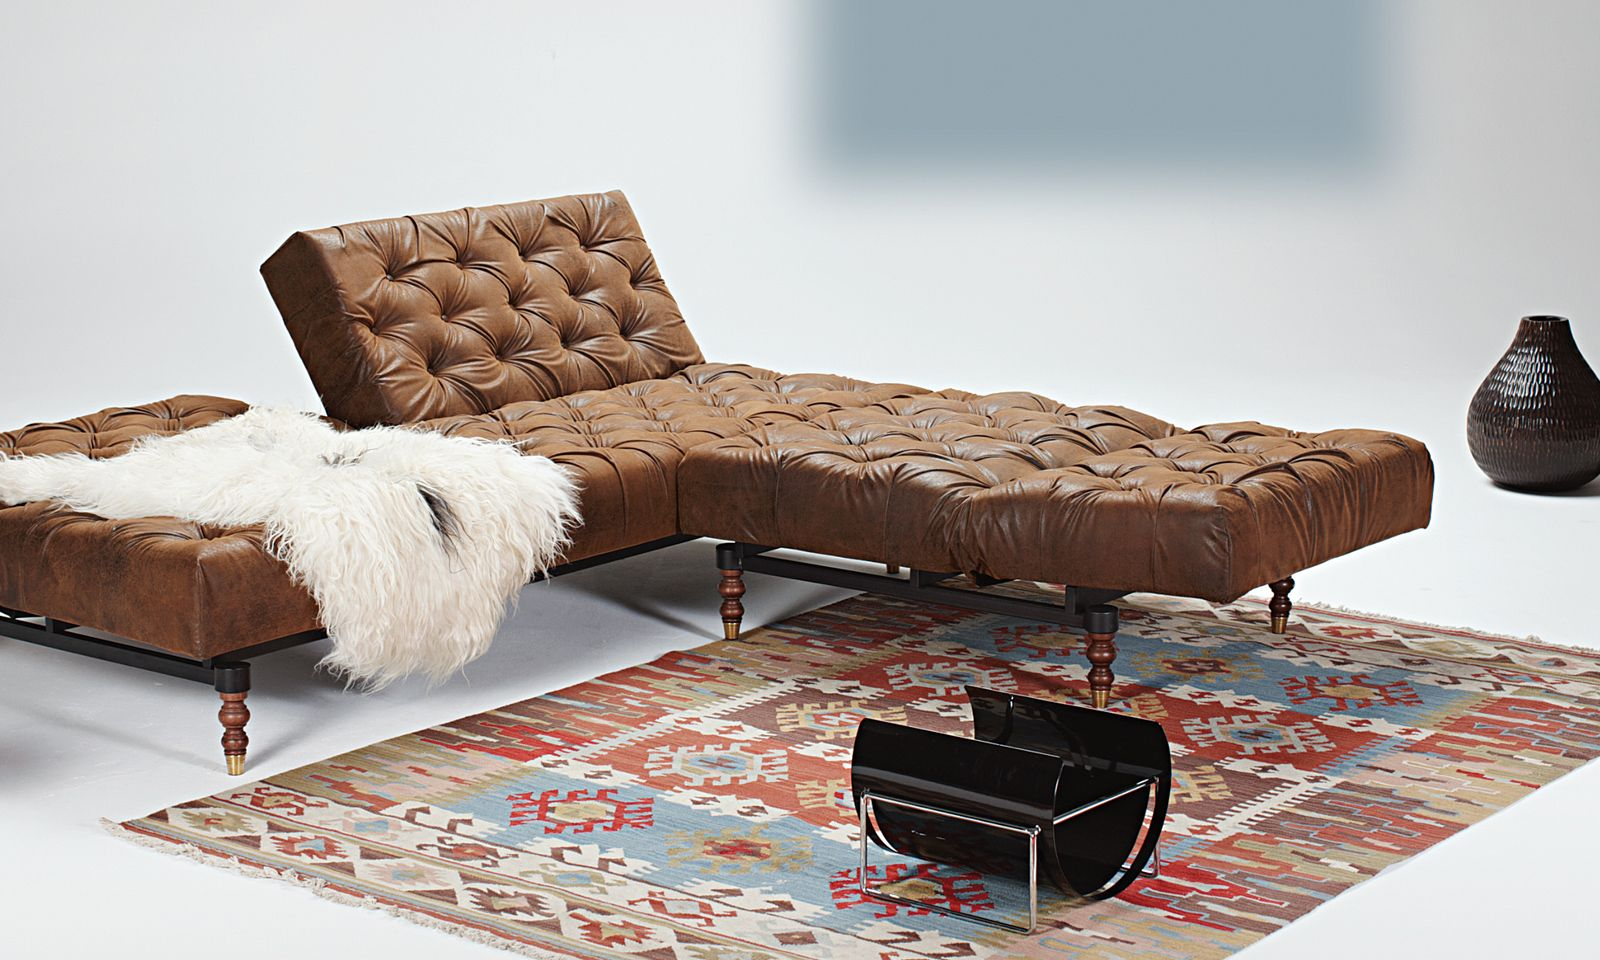 Schlafcouch Vintage Innovation Oldschool Schlafsofa Brown Vintage 461 Schlafsofas